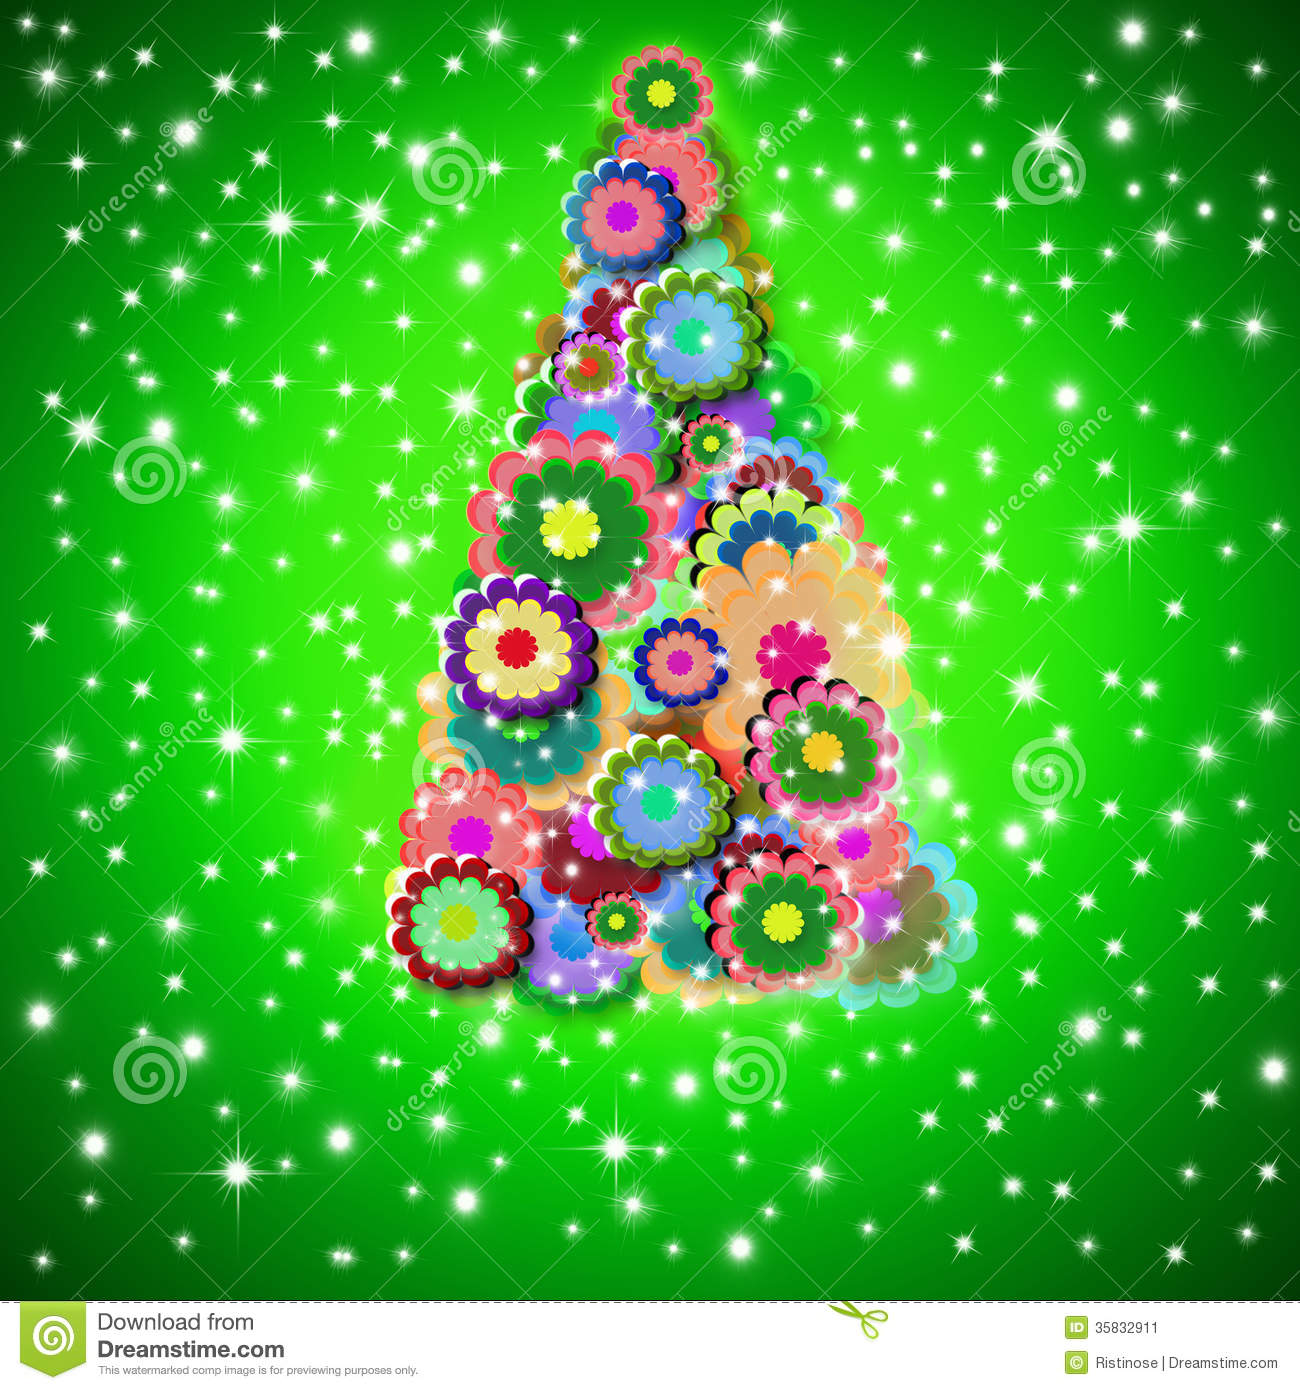 Hippie Christmas Tree Greeting Card Stock Illustration ...